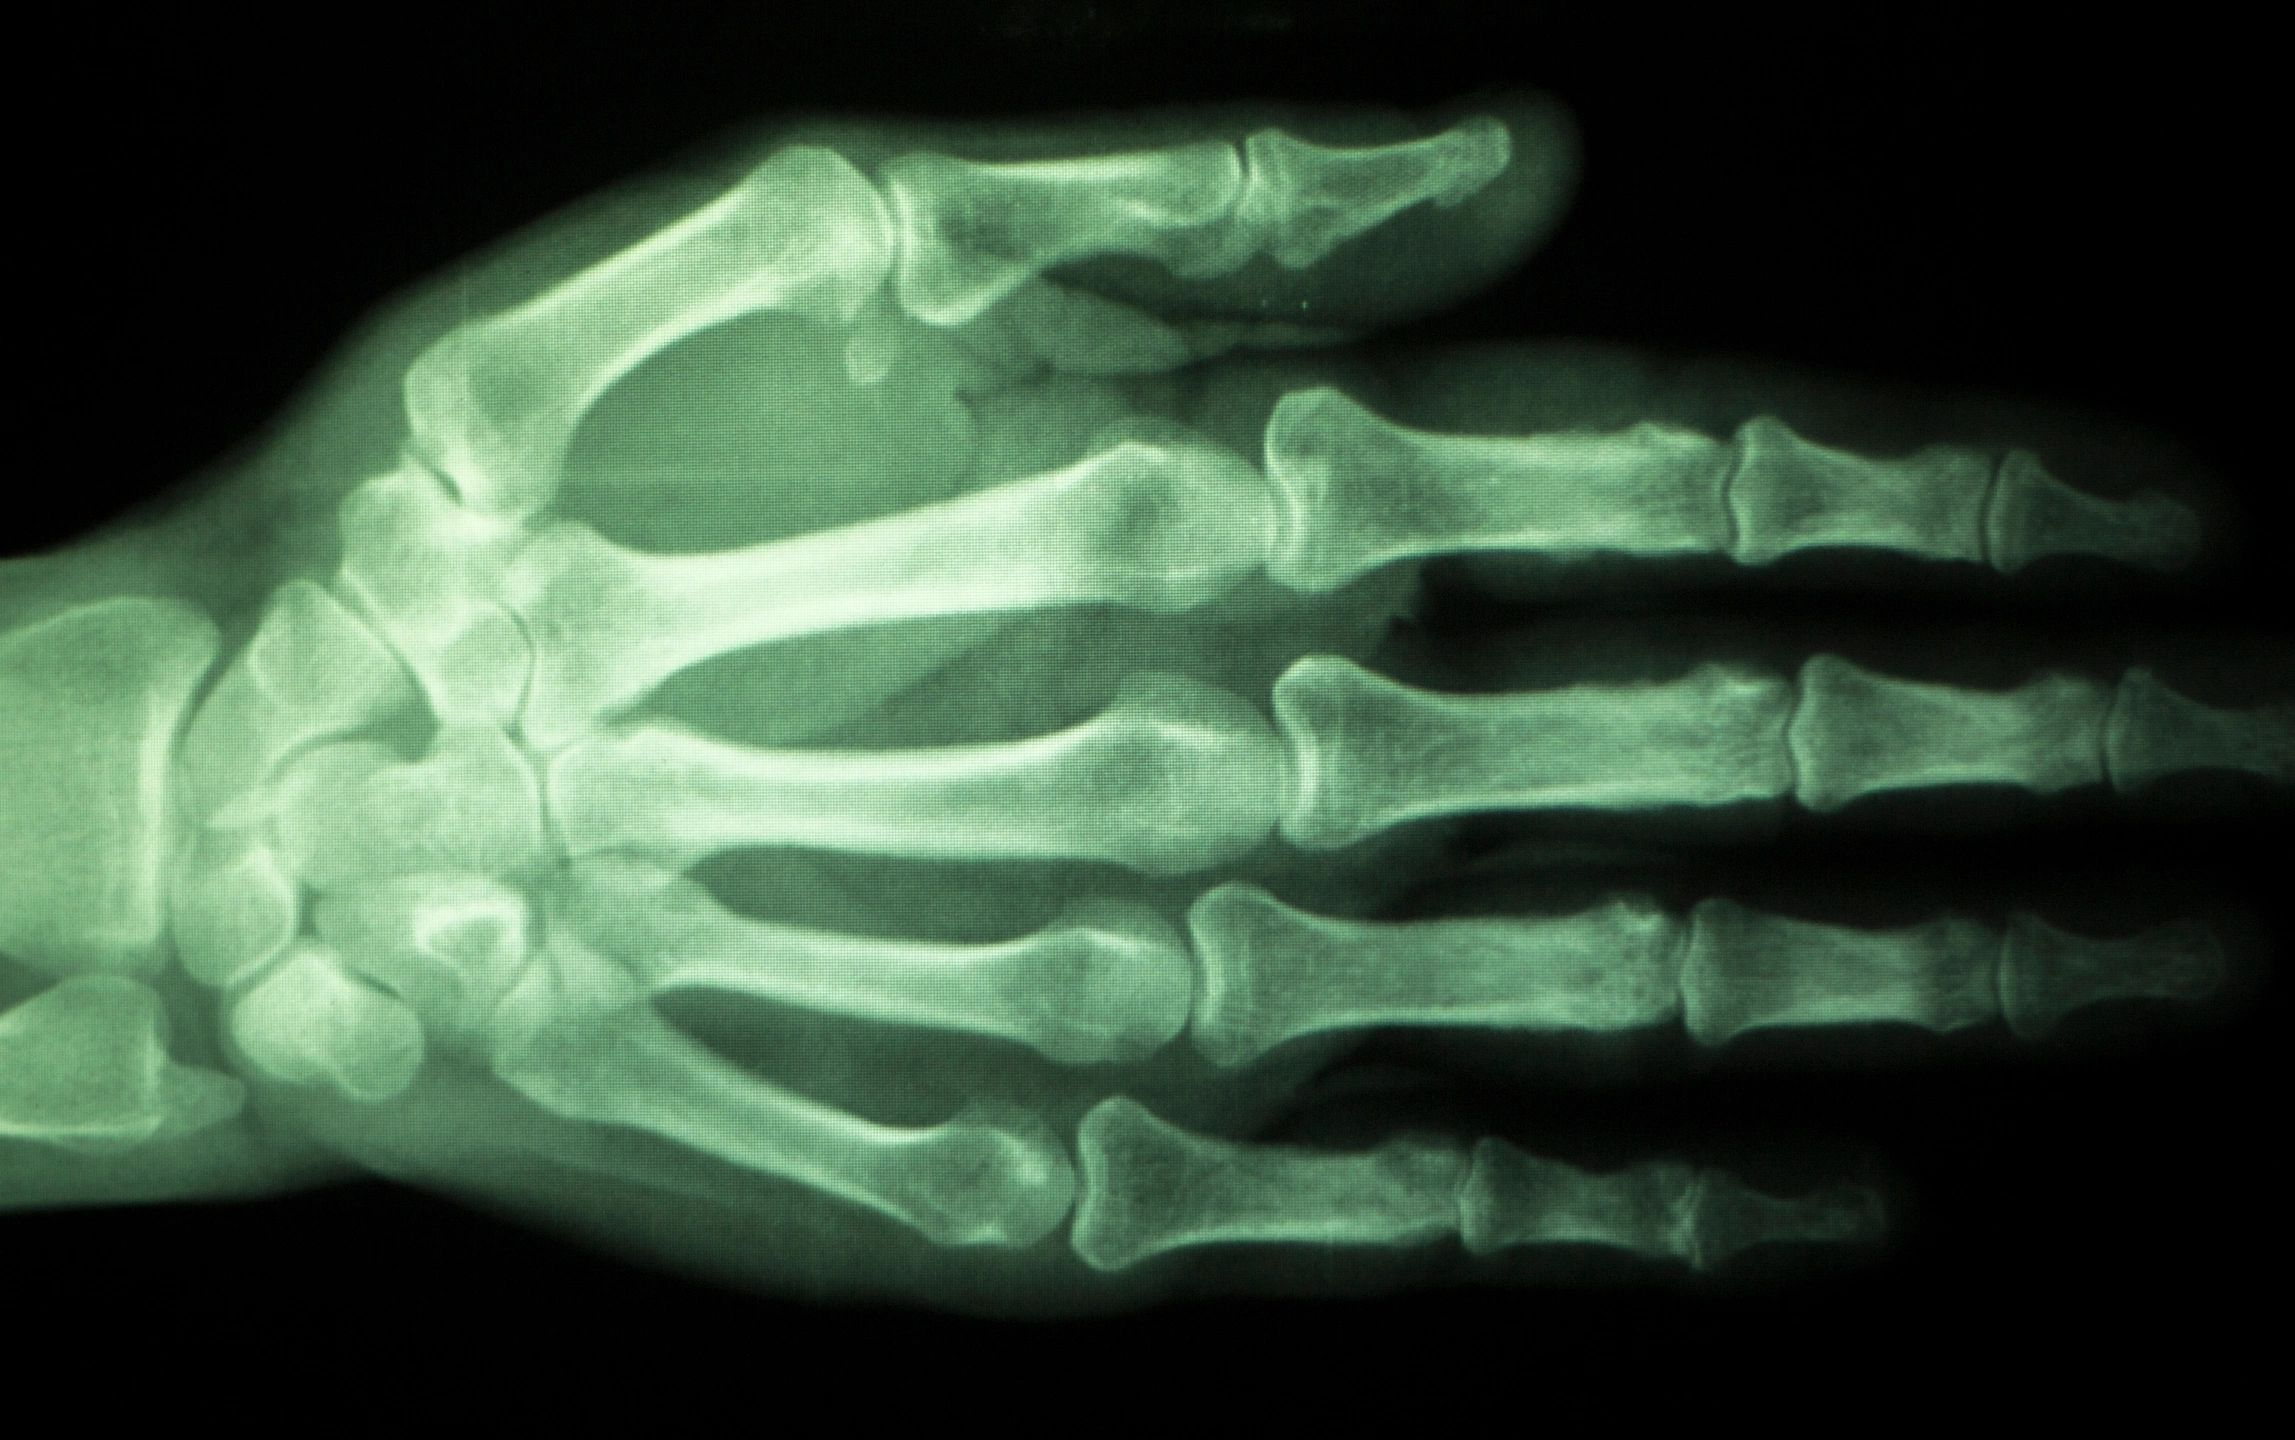 microchipping legal implications